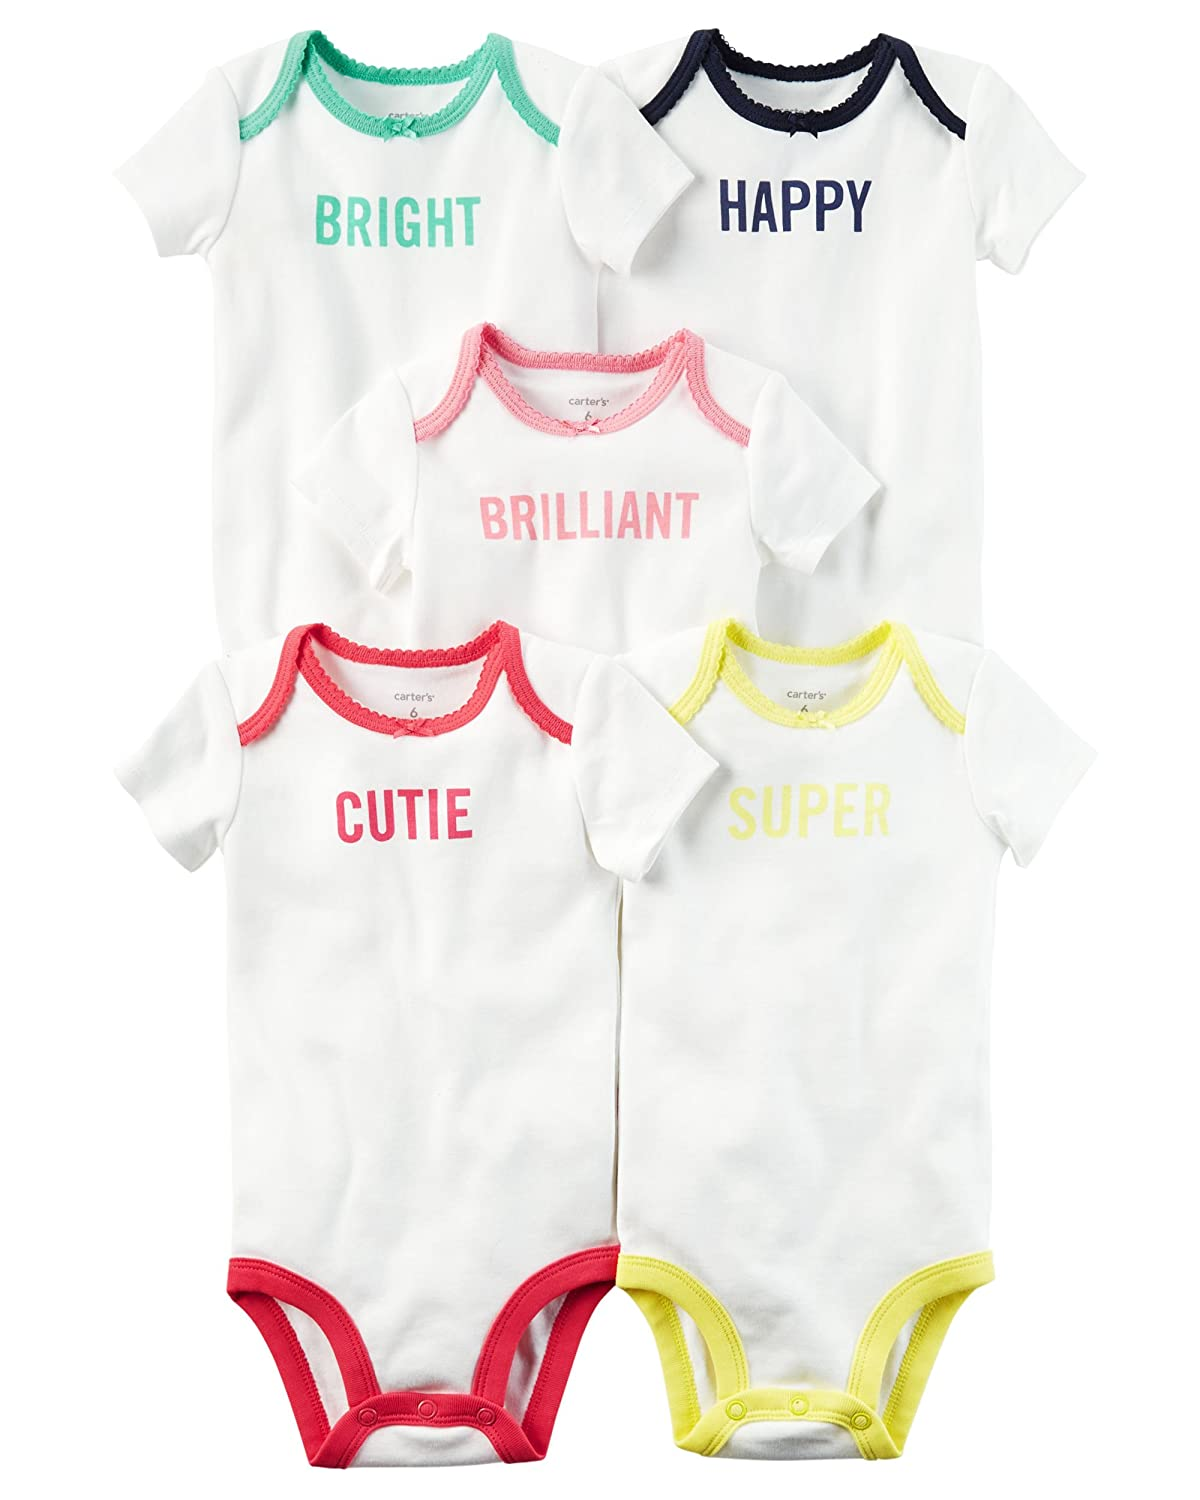 d9b03cb1a Amazon.com: Carter's Baby Girls' 5 Pack Bodysuits (Baby), Kitty Love:  Clothing